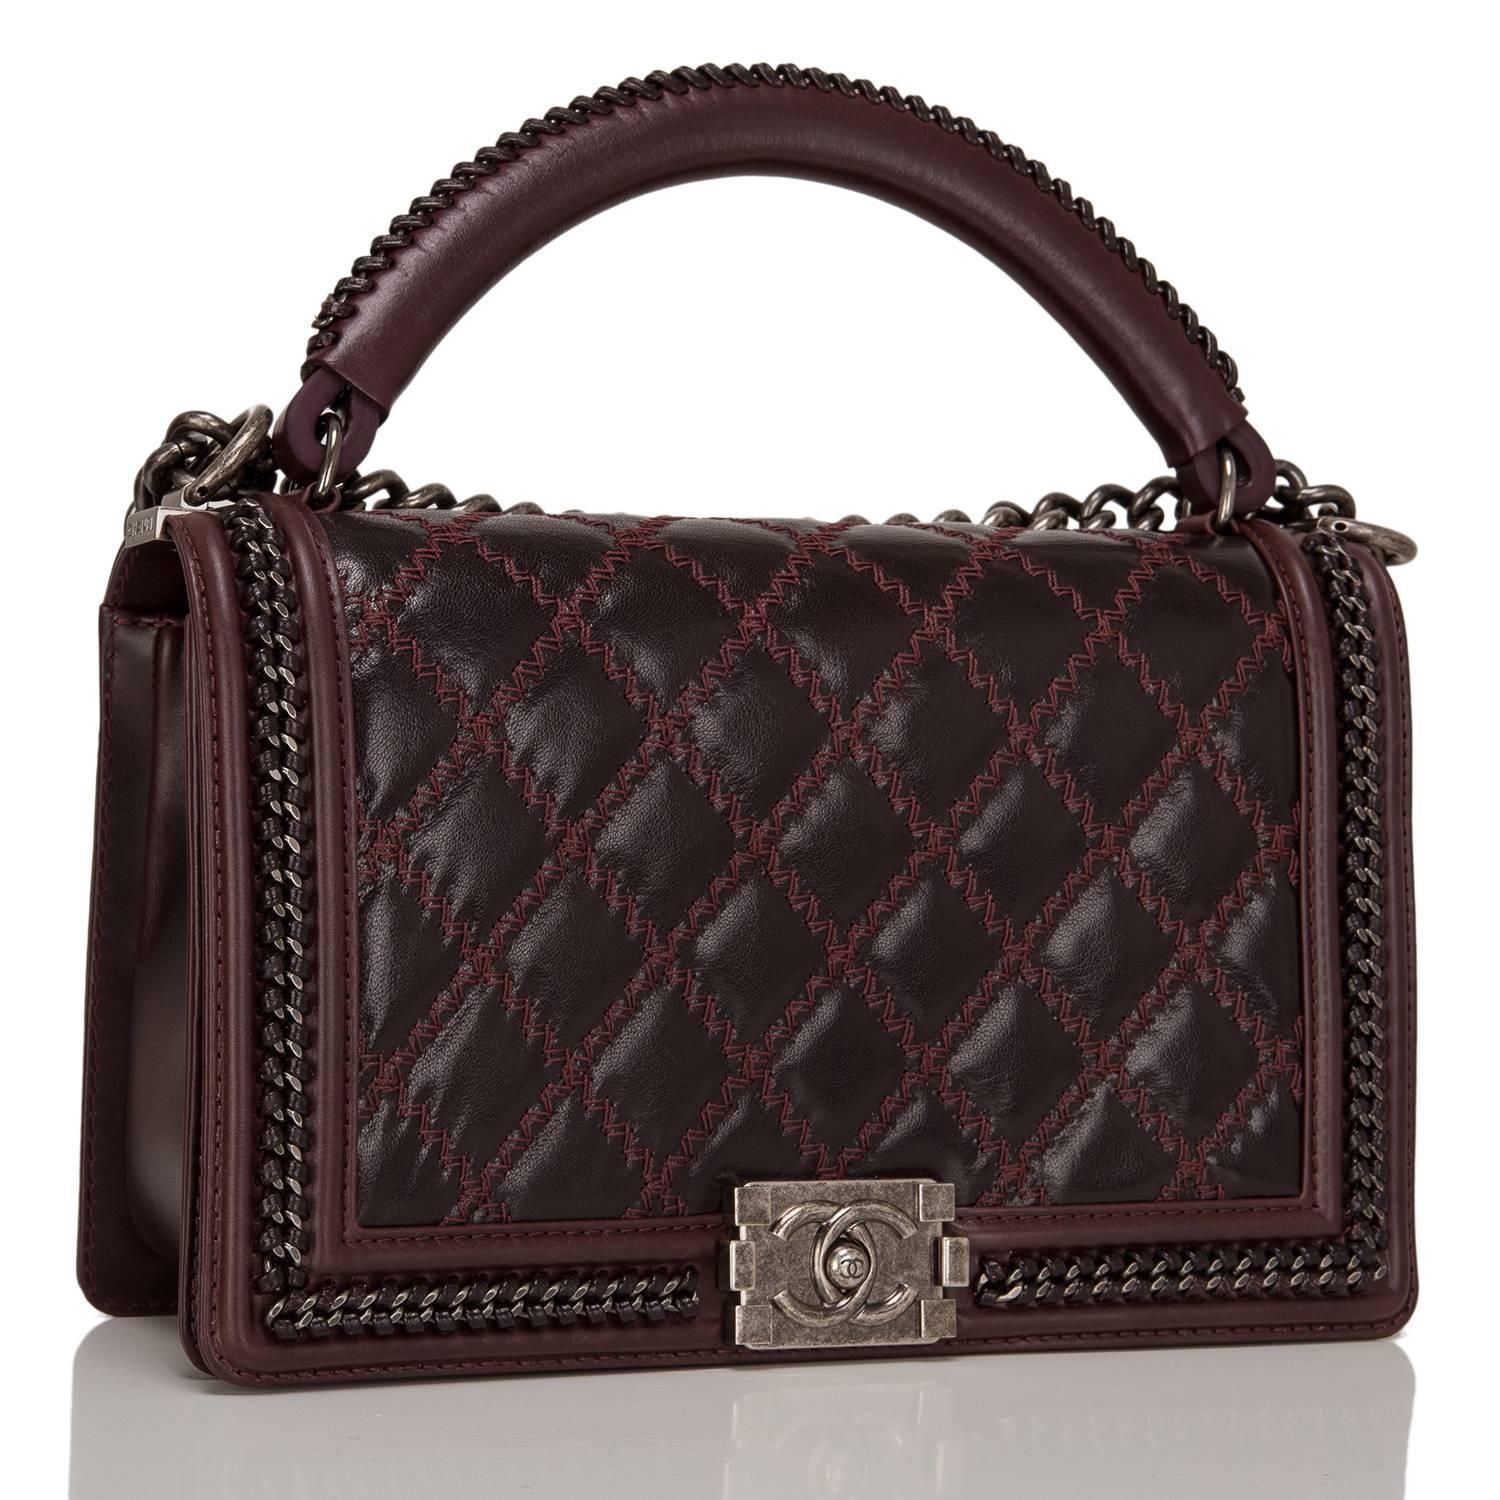 93d263ce190170 Chanel Burgundy Boy Bag With Top Handle | Closet - Bag Chanel | Bags ...